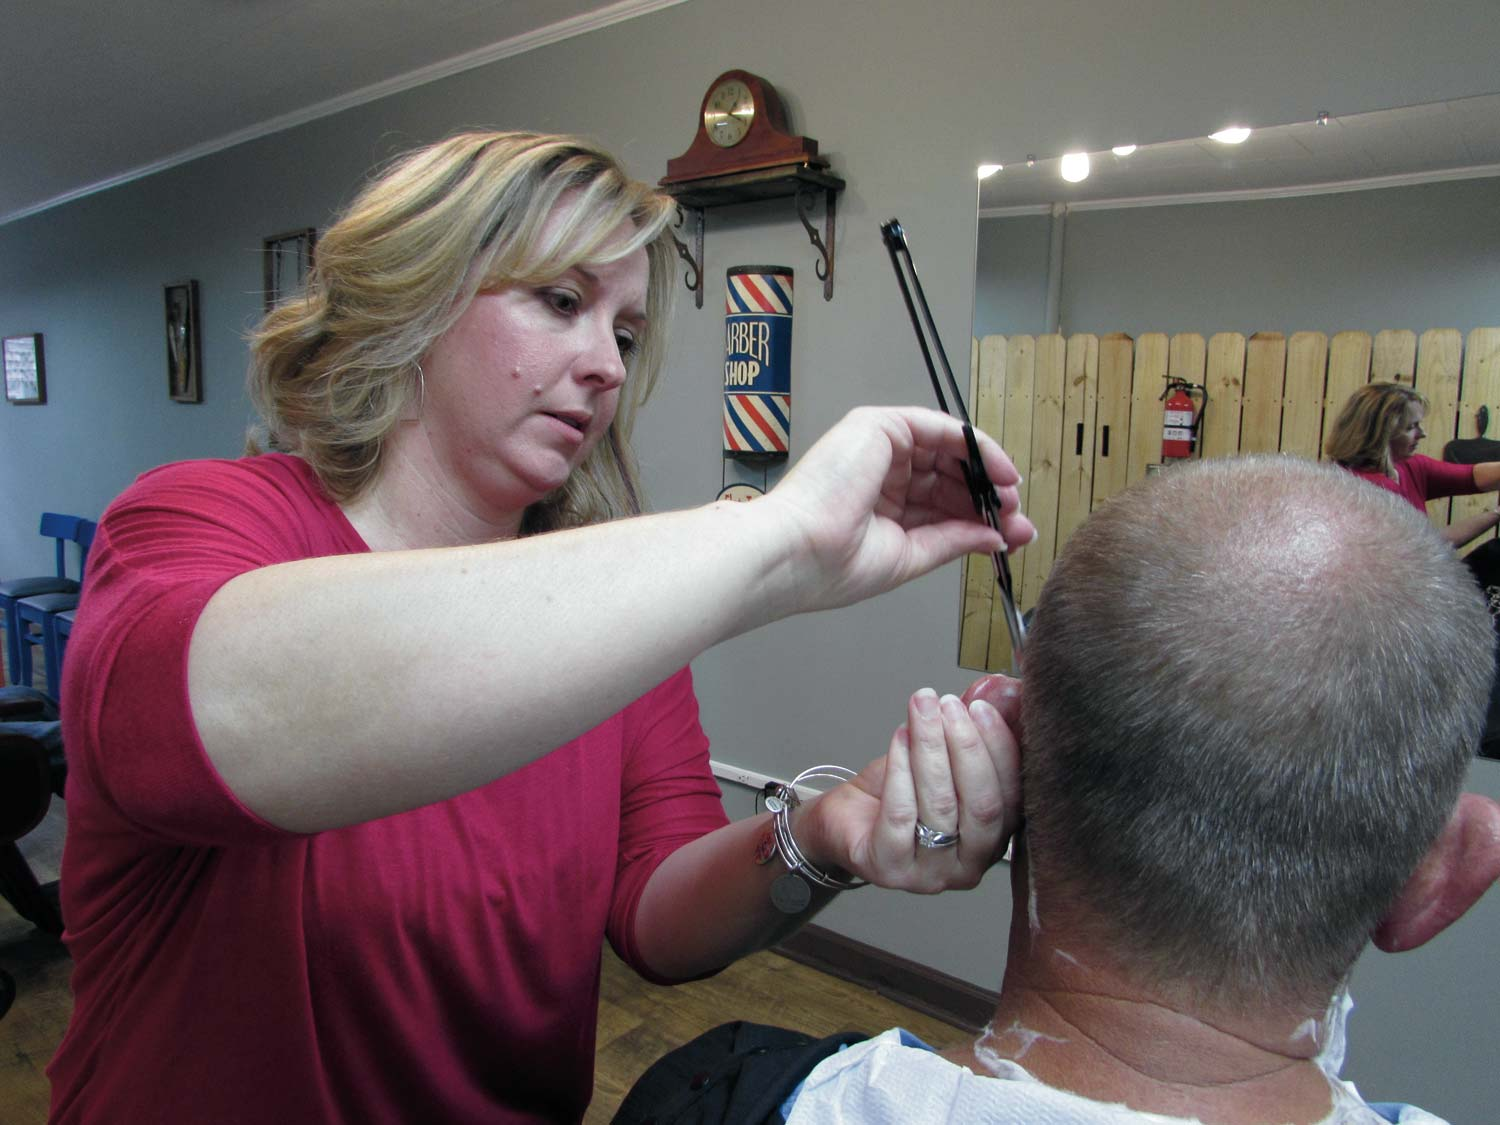 Cccc Barbering Graduate Opens Barber Shop 11132014. Master In Supply Chain Management. Master Degrees In Healthcare. American Signs And Banners Cost Of Mediation. Schultze Asset Management Llc. Electrician Washington Dc Stock Photo Account. Network Management Platforms. Reverse Mortgages Canada Bids Ediscompany Com. Myeloma Multiple Treatment Us School Of Music